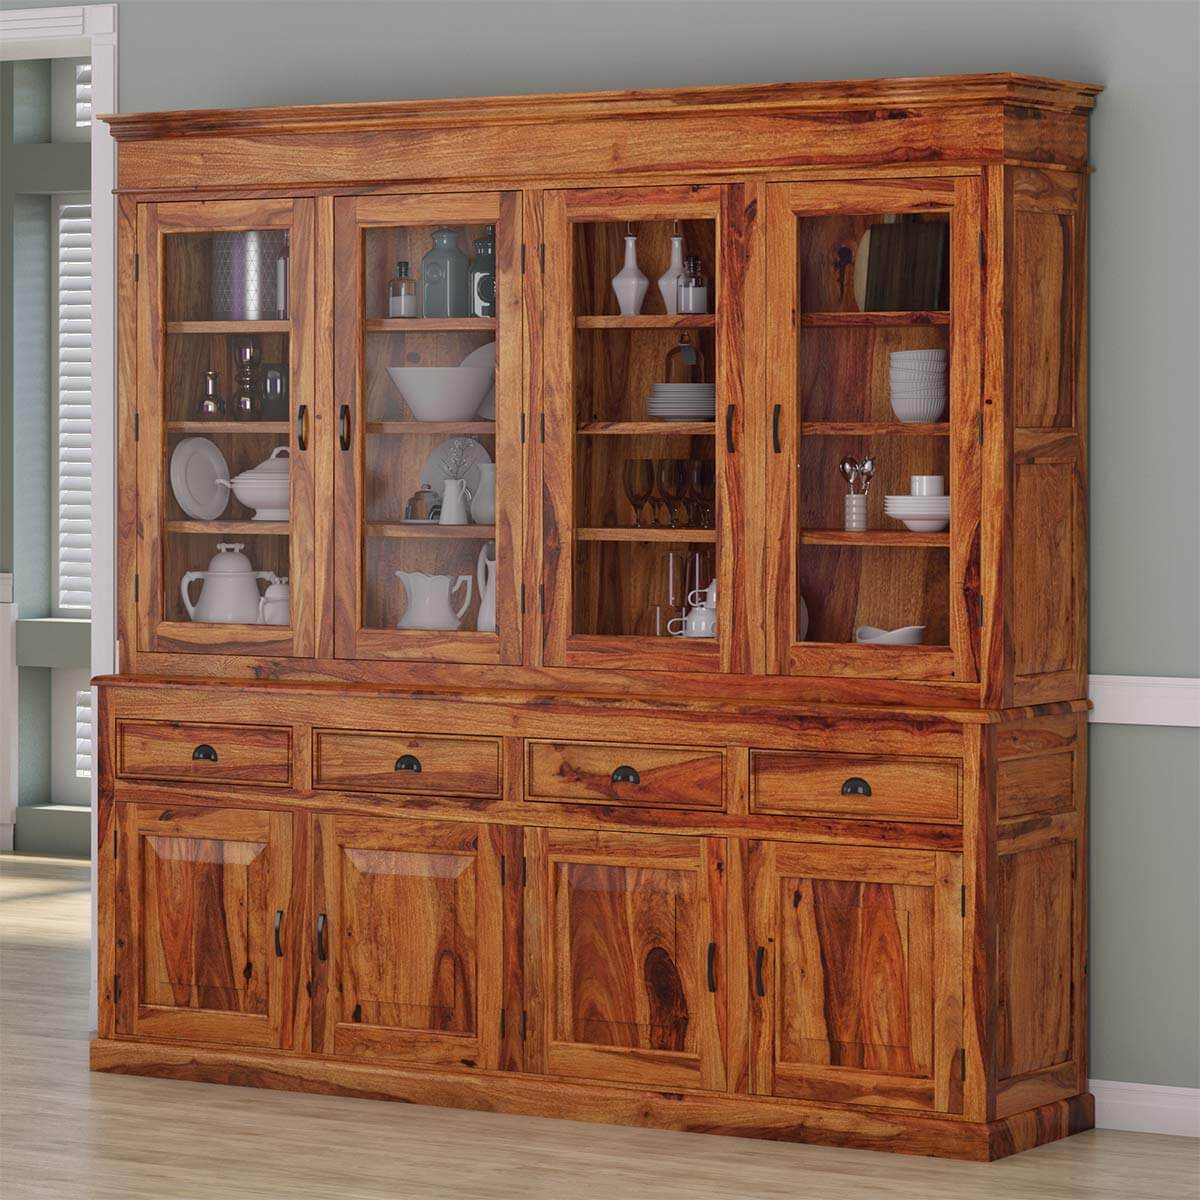 Cariboo Contemporary Rustic Solid Wood Dining Room Large Buffet Hutch Throughout Contemporary Espresso 2 Cabinet Dining Buffets (View 6 of 30)